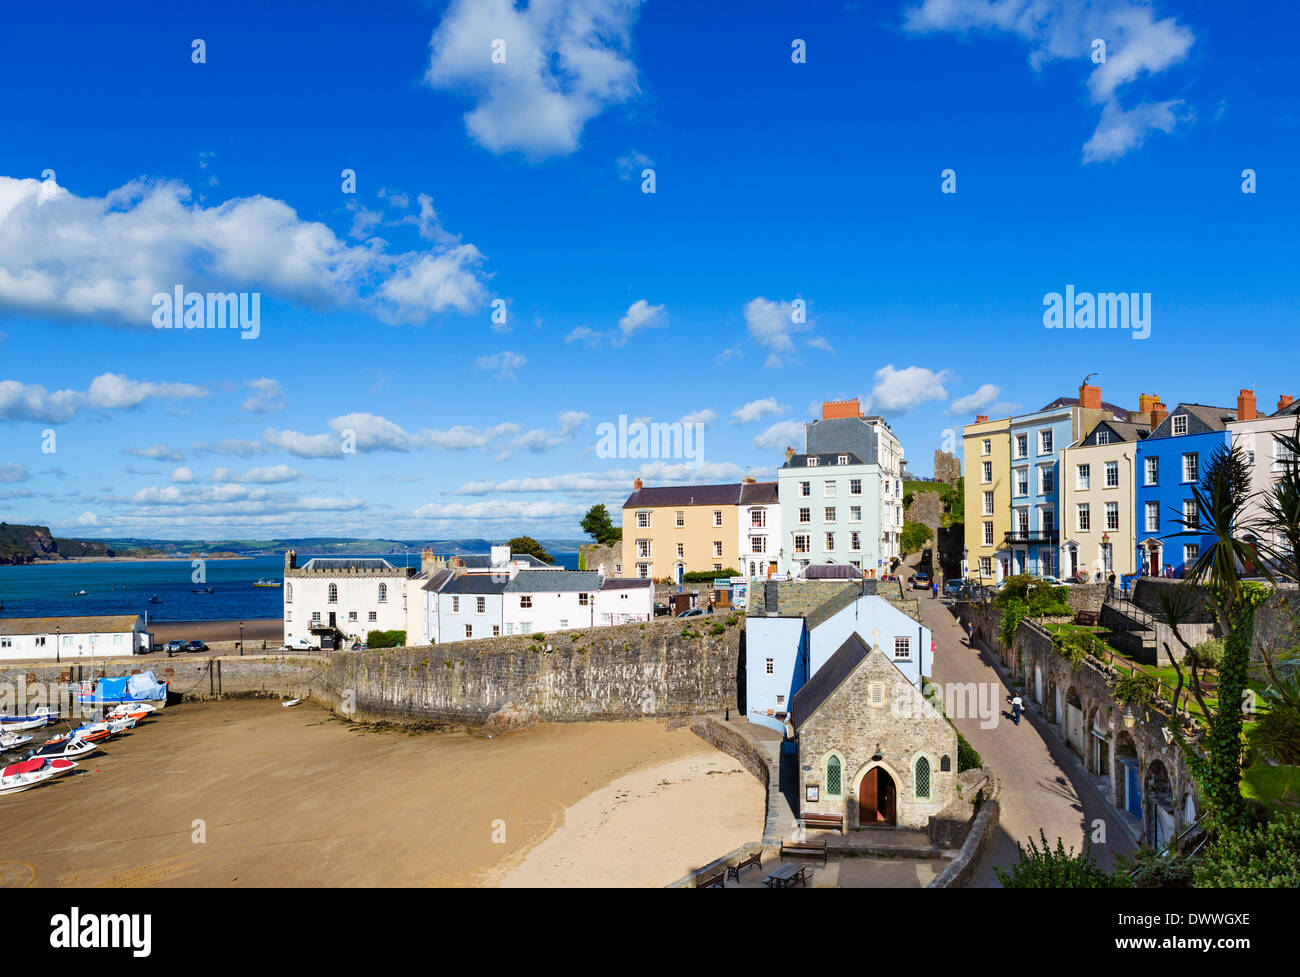 View over the harbour at low tide, Tenby, Carmarthen Bay, Pembrokeshire, Wales, UK - Stock Image